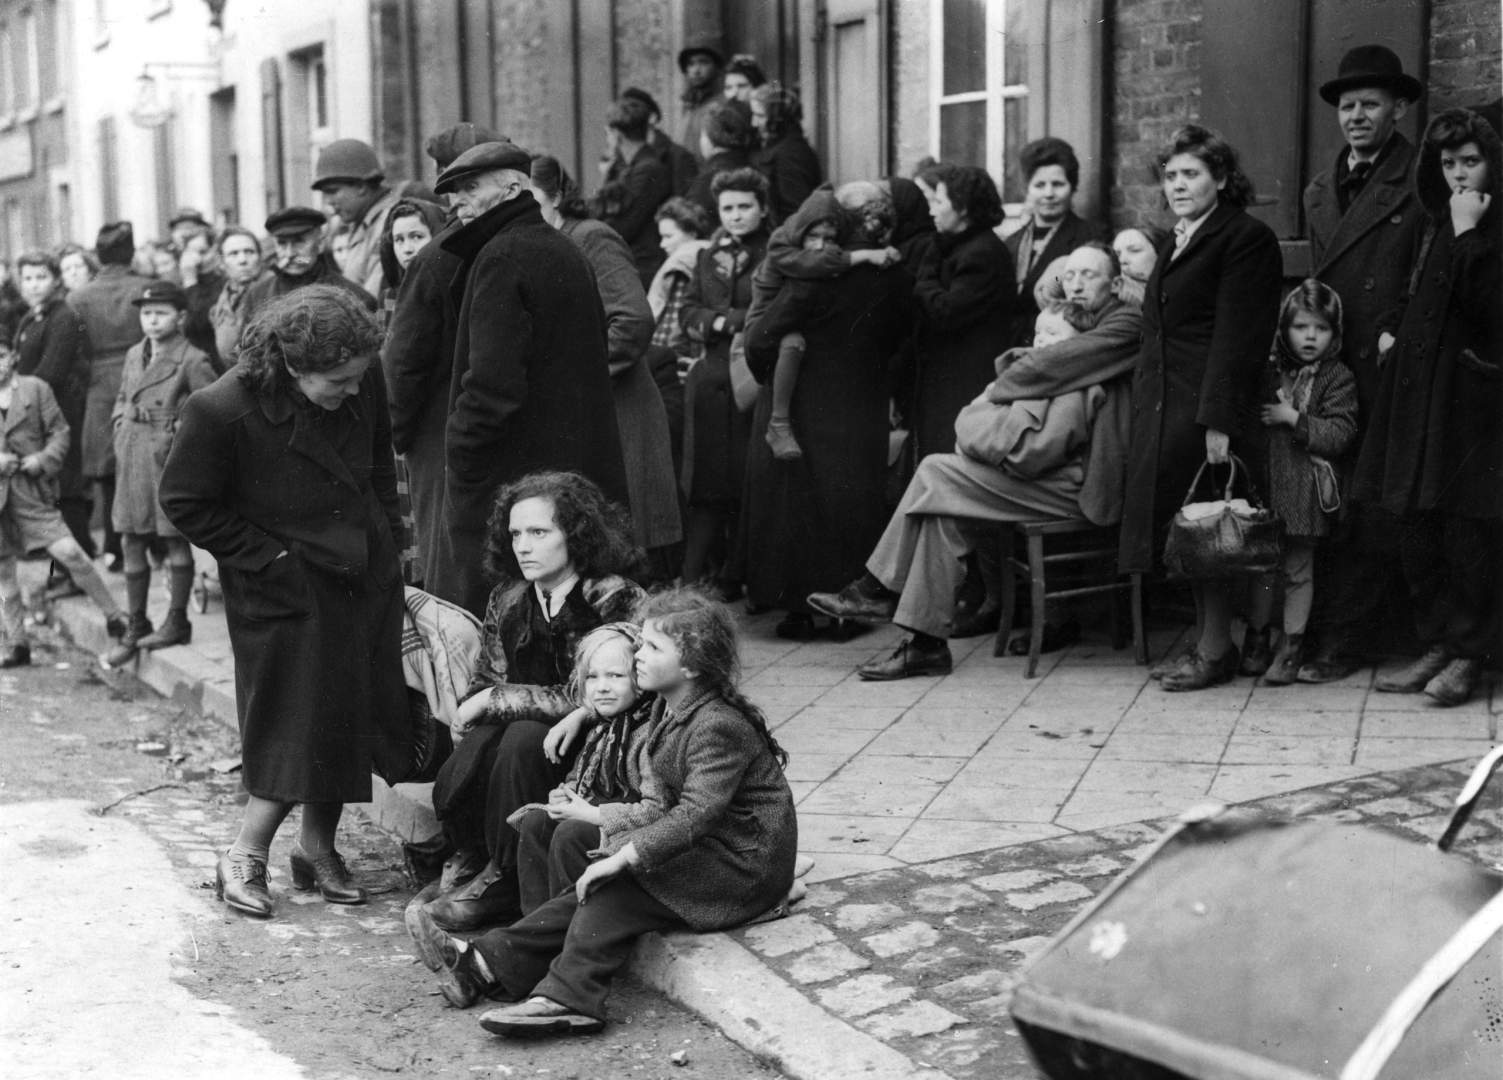 genocide ww2 holocaust - photo #23